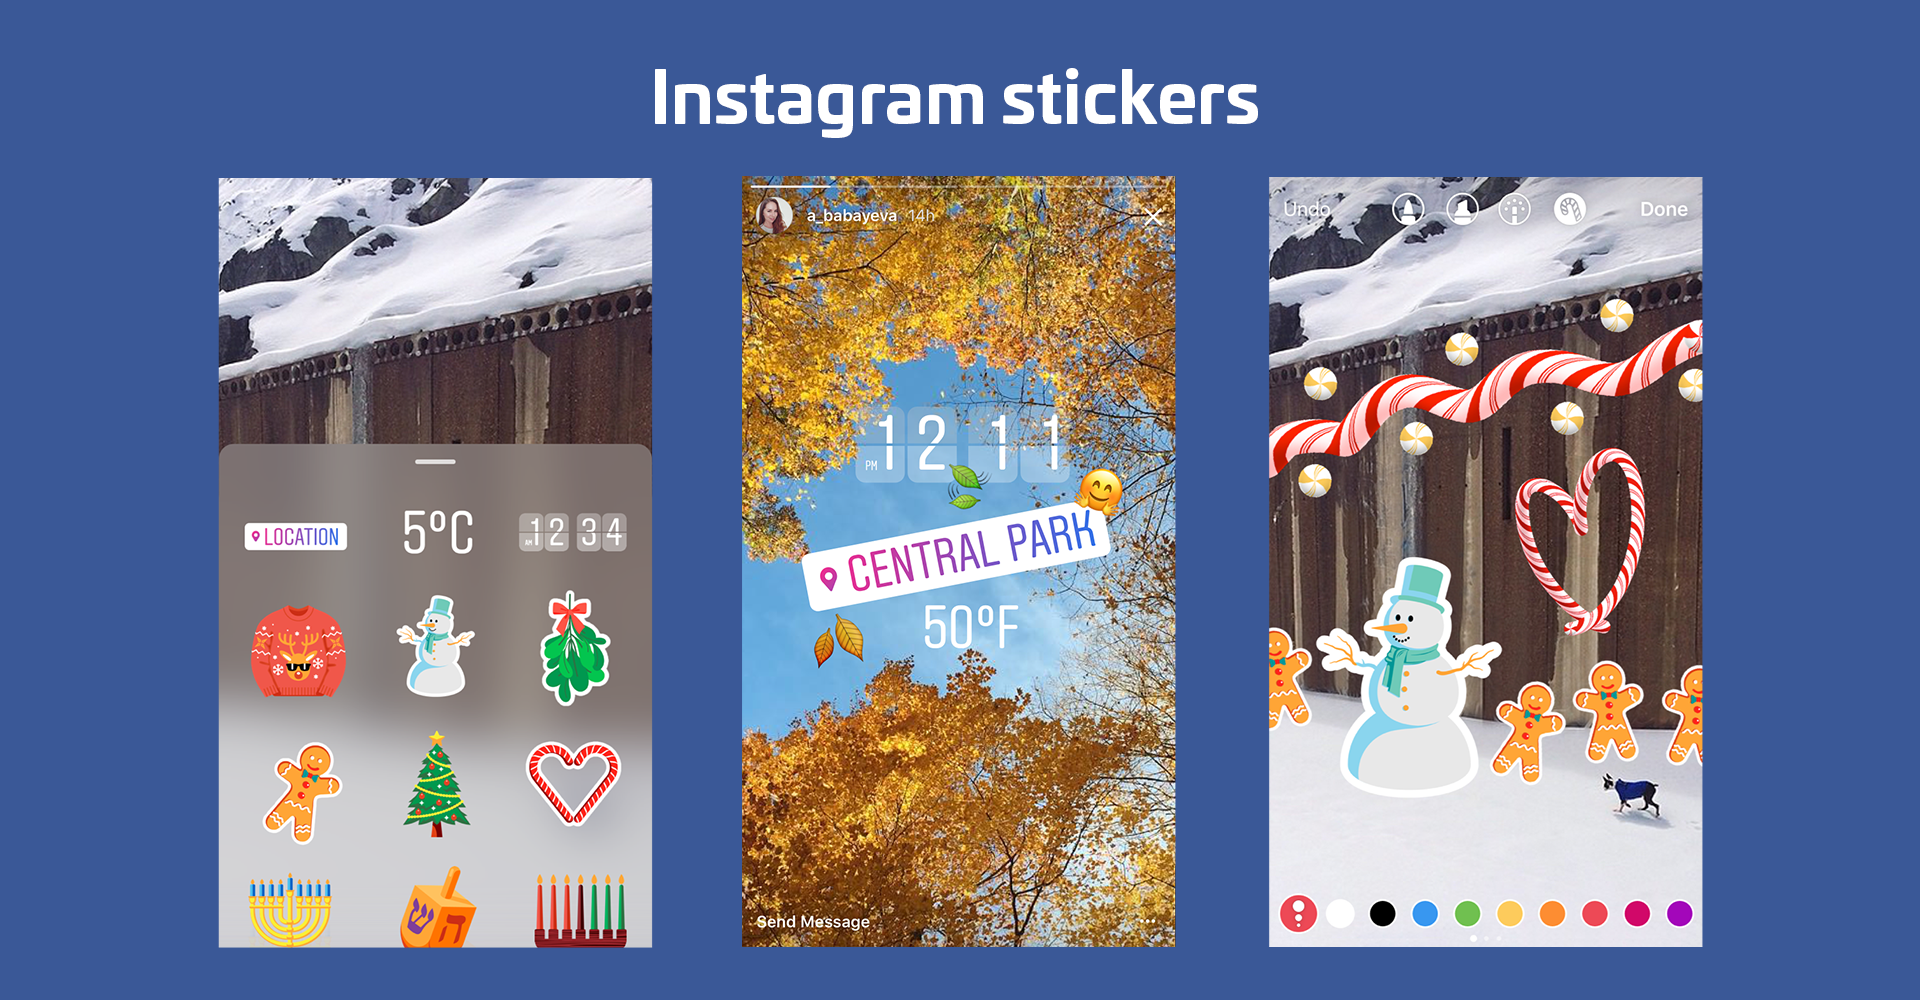 Instagram stories launches overlaid stickers for locations emoji instagram stories launches overlaid stickers for locations emoji and seasons techcrunch ccuart Gallery